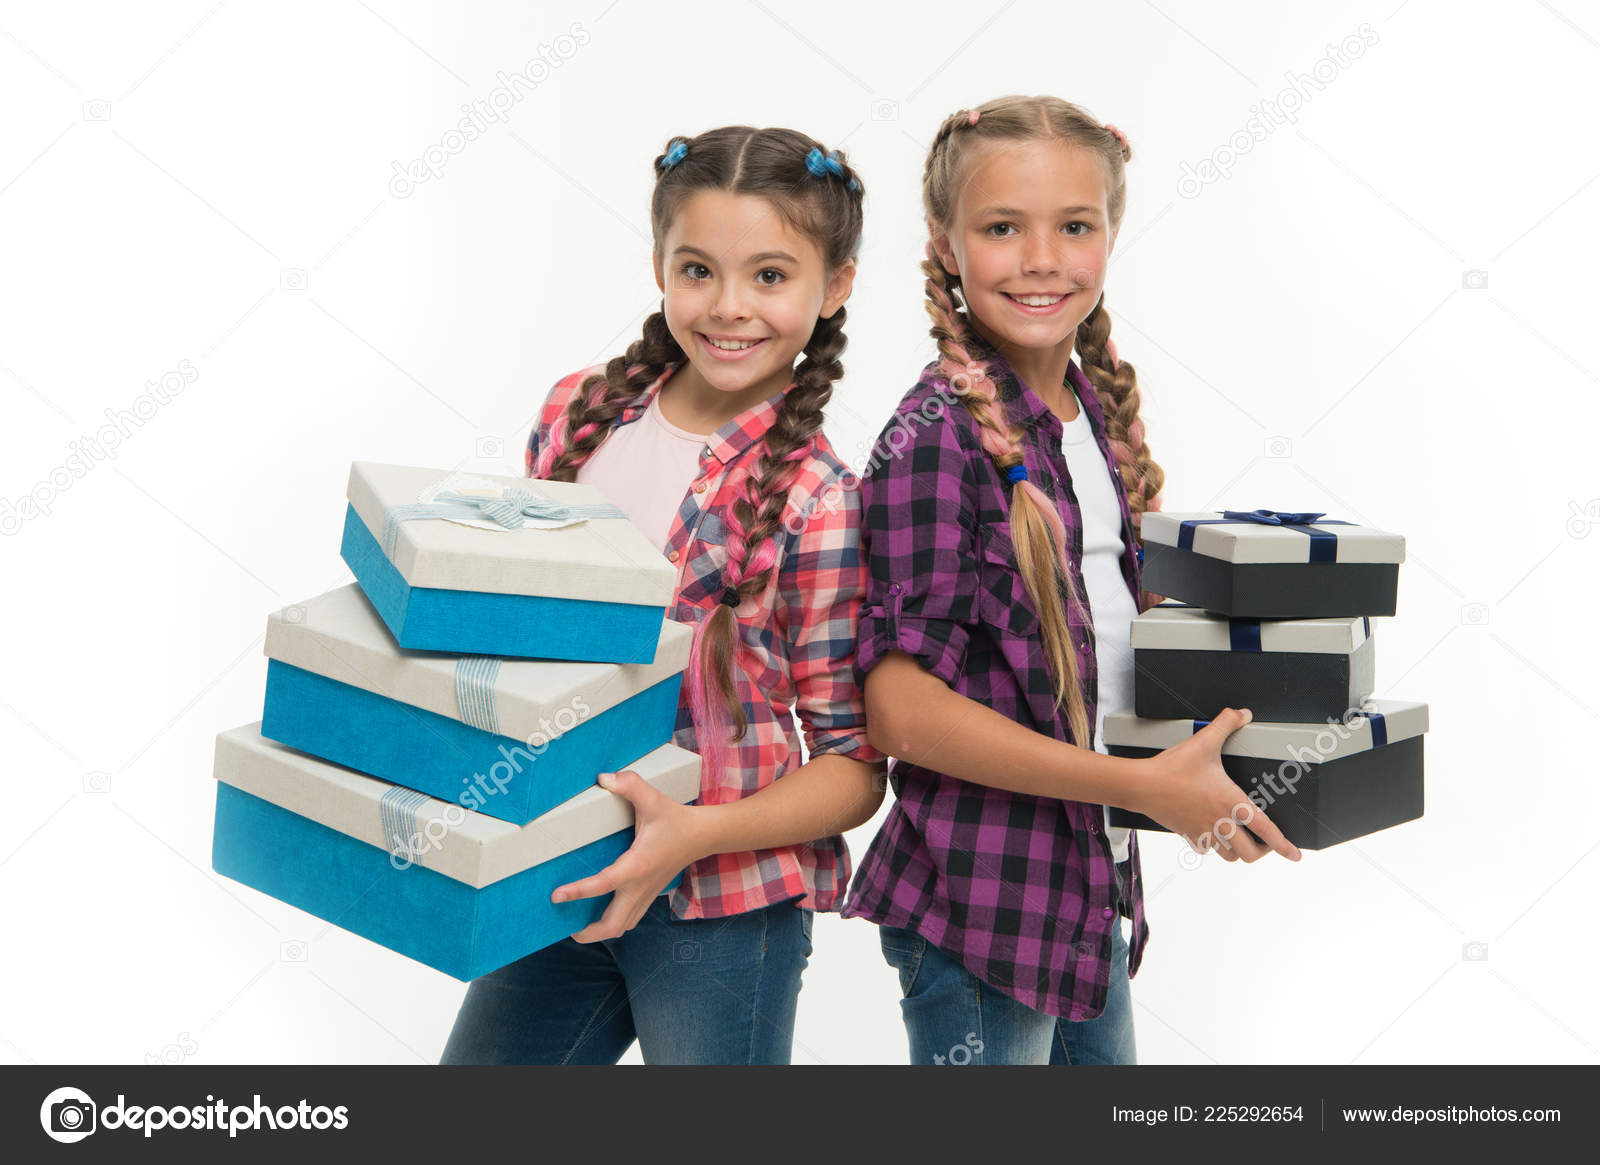 Children Excited About Unpacking Gifts Small Girls Sisters Received Birthday Gifts Dreams Come True Best Birthday